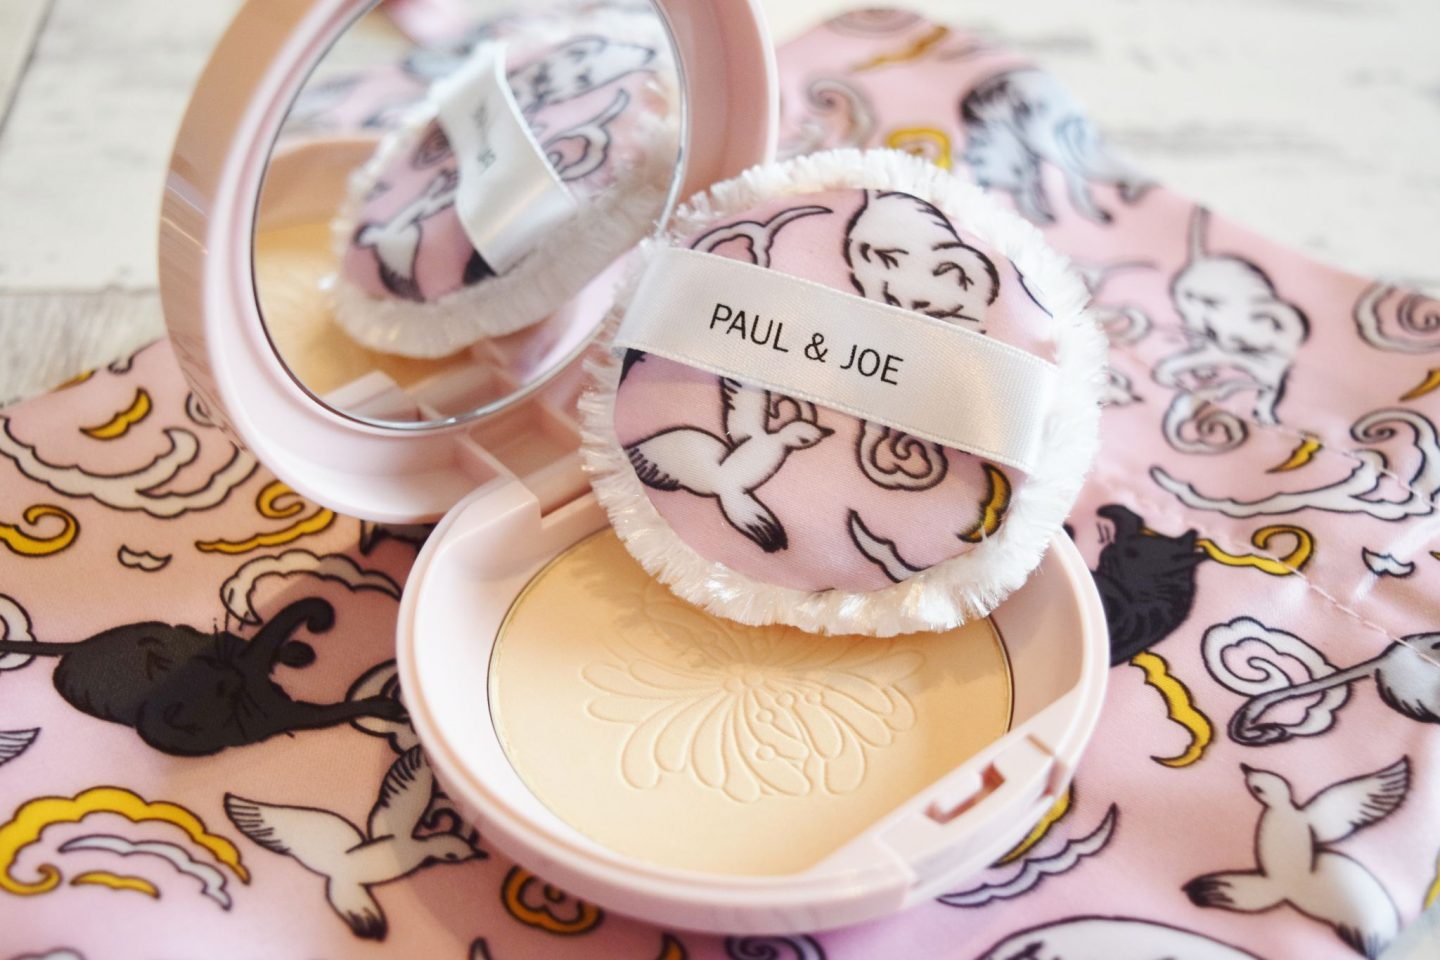 Paul & Joe Beaute Limited Edition Silky and Highlighting Pressed Face Powder in Natural Beige